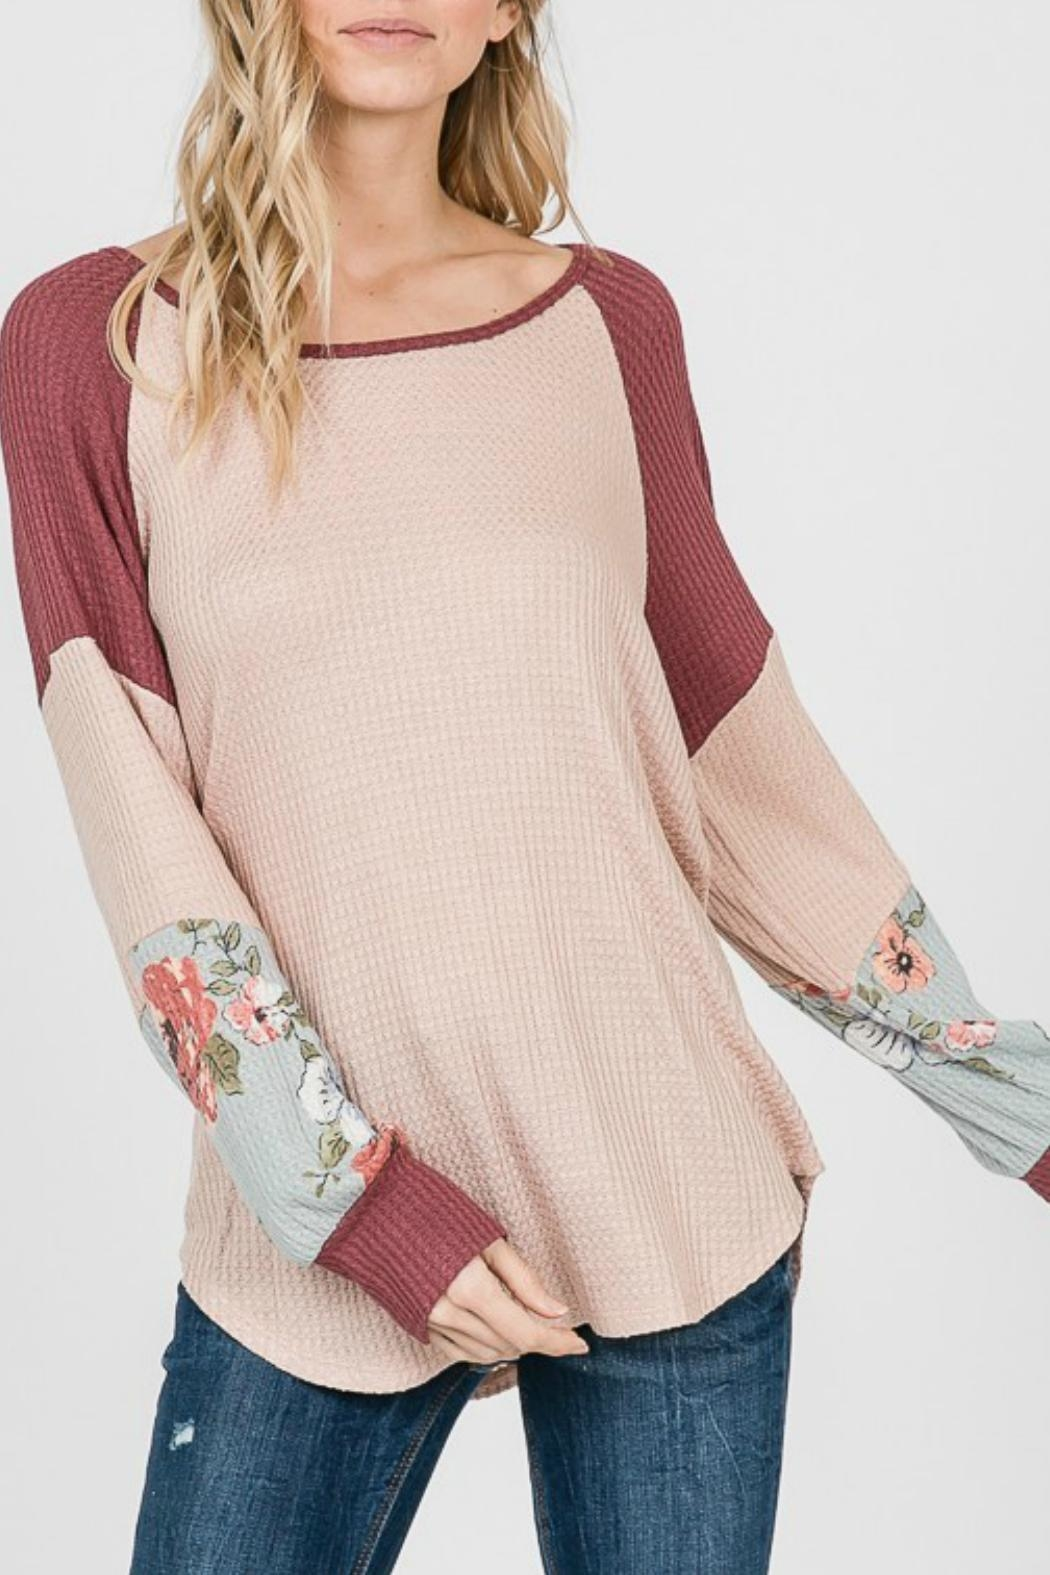 7th Ray Floral Sleeve Pullover - Back Cropped Image